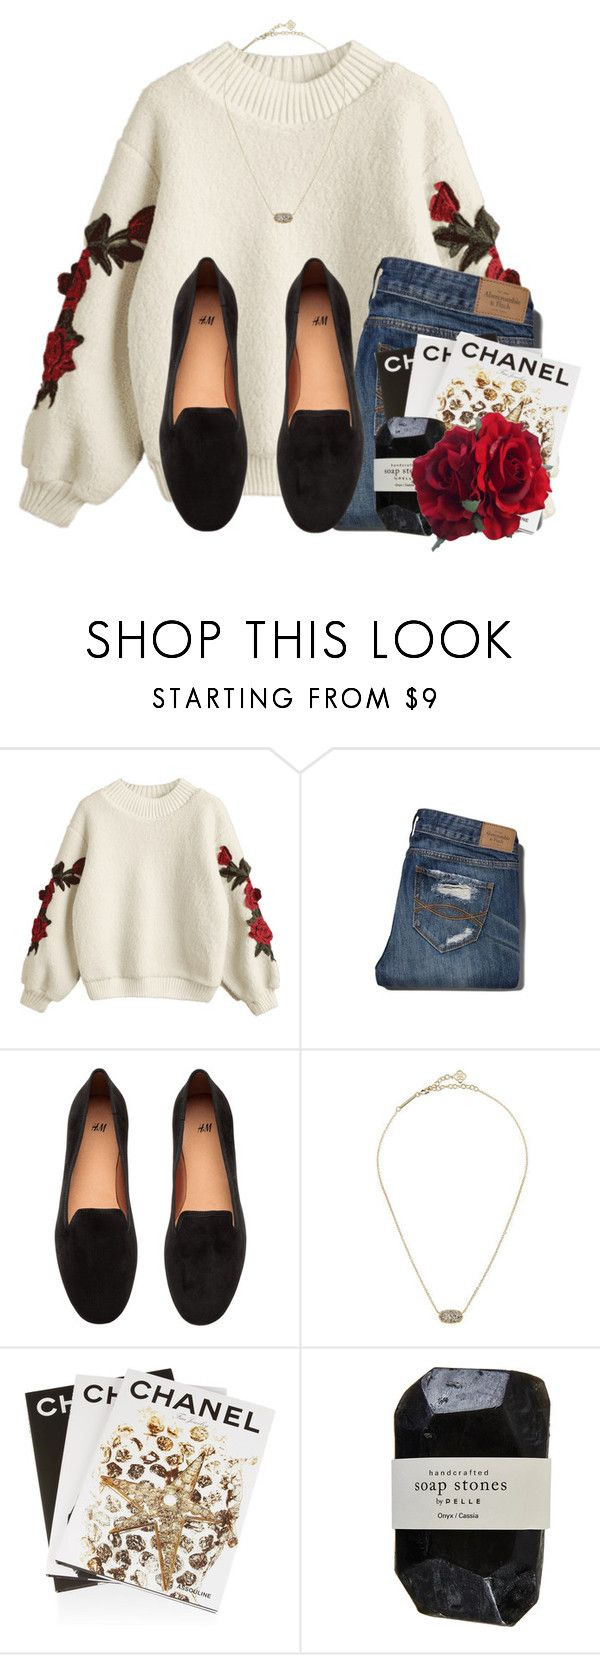 """Getting baptized tomorrow!"" by lindonhaley ❤ liked on Polyvore featuring Abercrombie & Fitch, H&M, Kendra Scott, Assouline Publishing and Cassia"